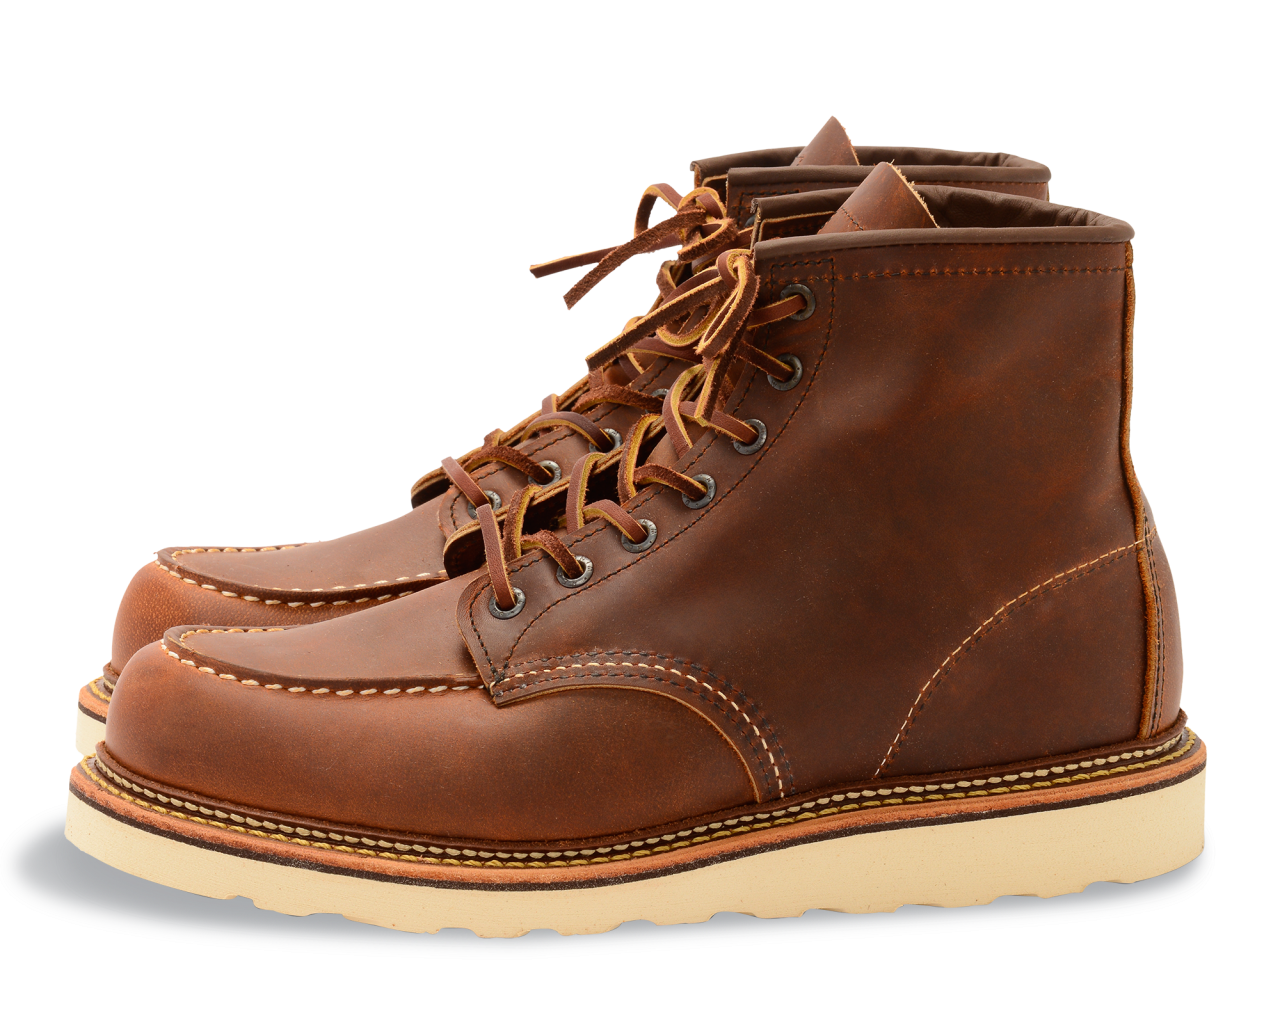 Red Wing 1907 Moc Toe